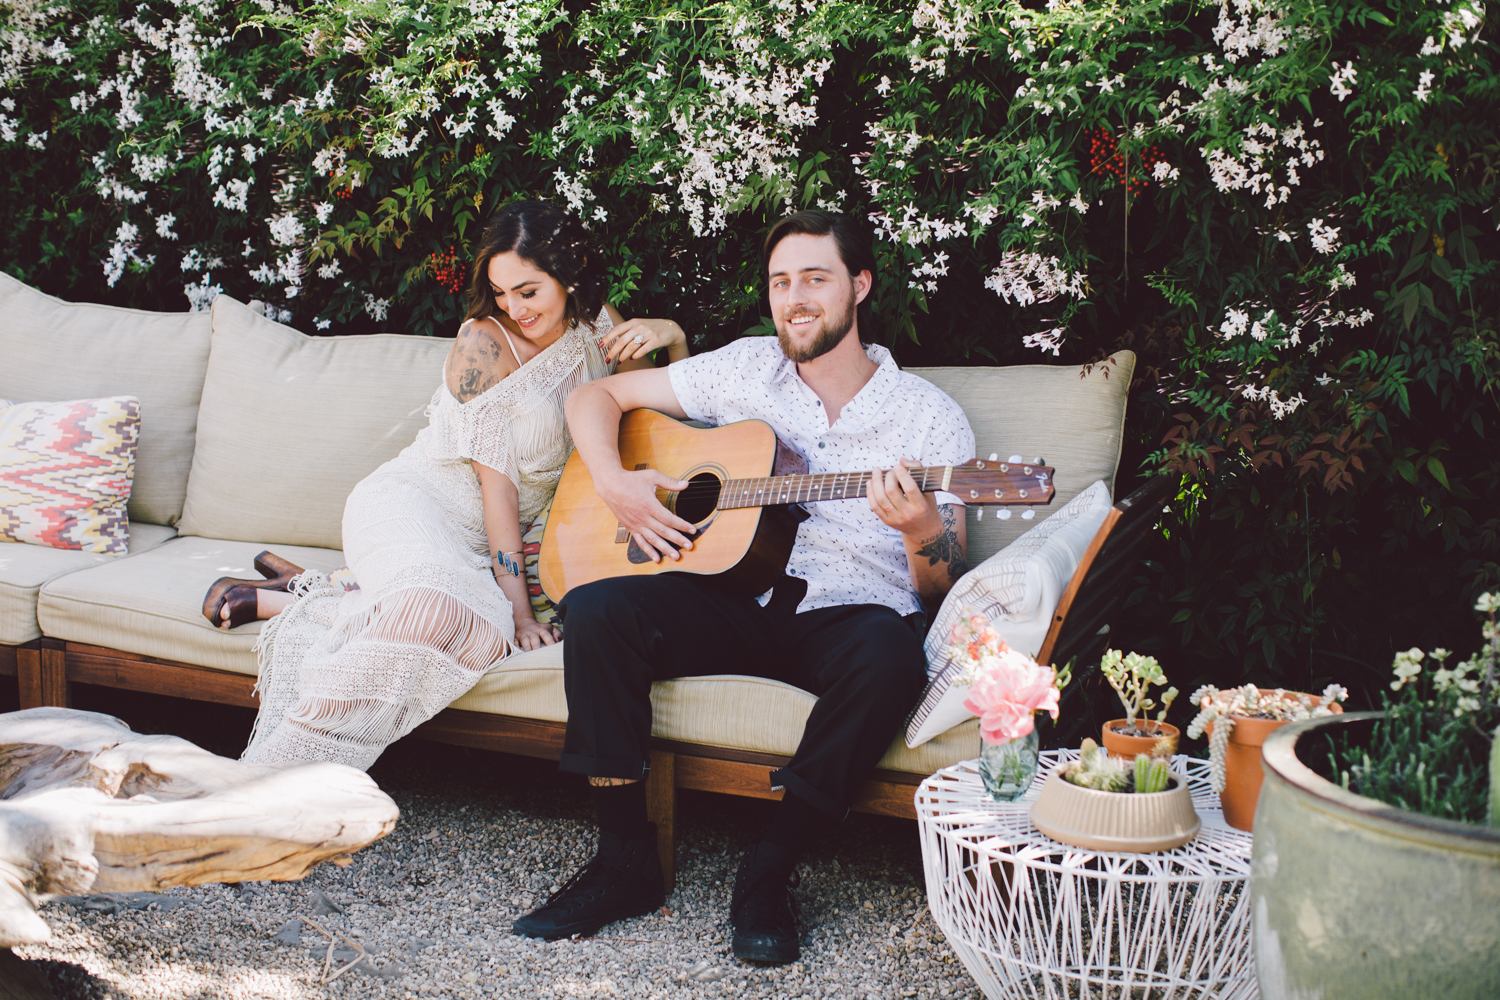 Ojai Bohemian Elopement at Tipple & Ramble, Planned & Designed by Art & Soul Events